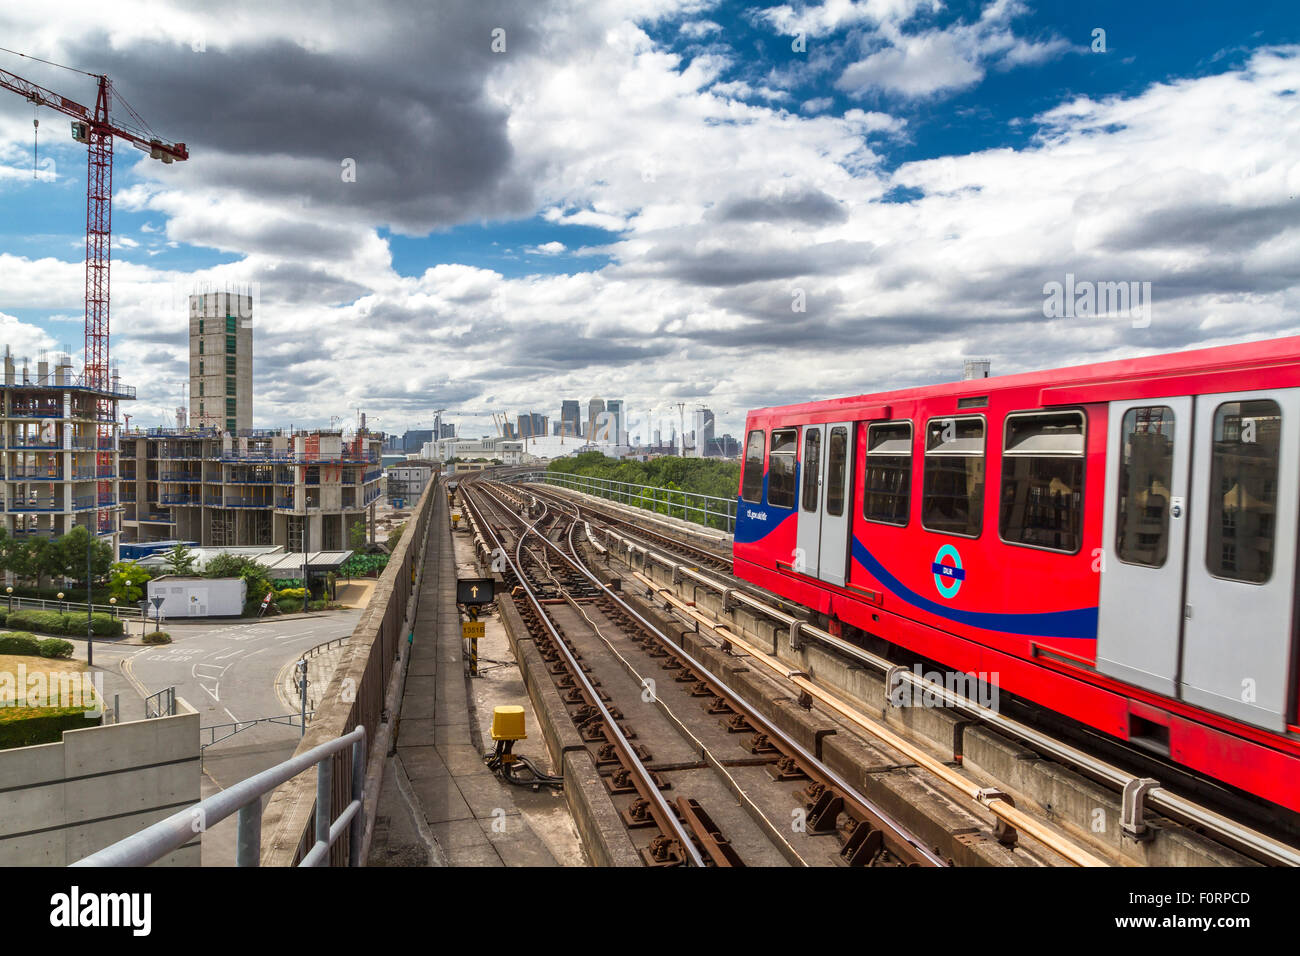 Canary Wharf From Pontoon Dock DLR Station ,with a DLR train leaving the station along the railway tracks - Stock Image